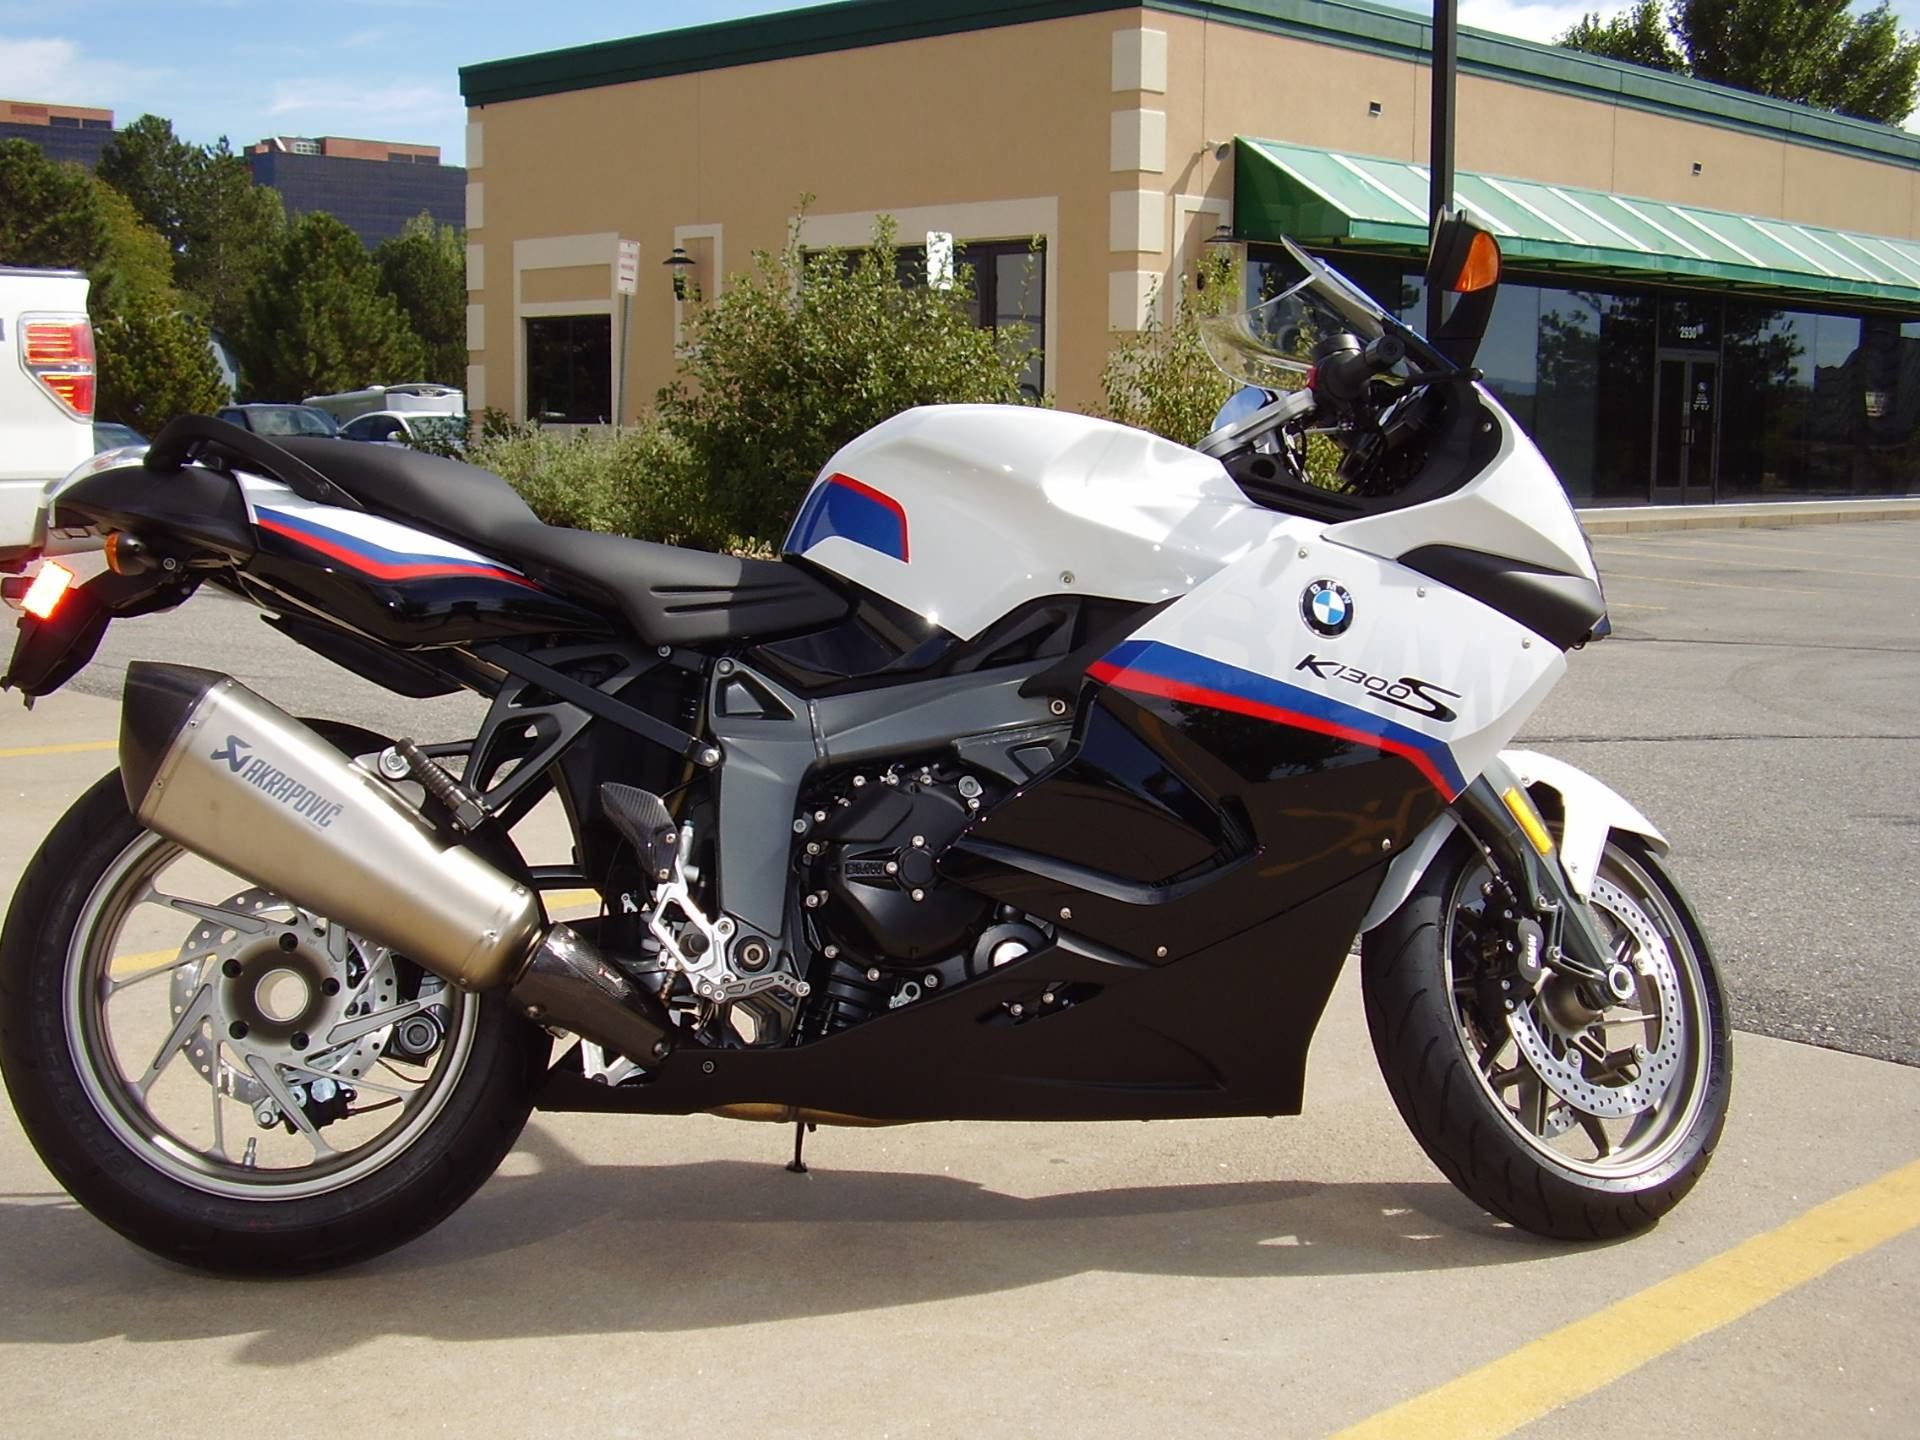 2016 BMW K 1300 S in Centennial, Colorado - Photo 1